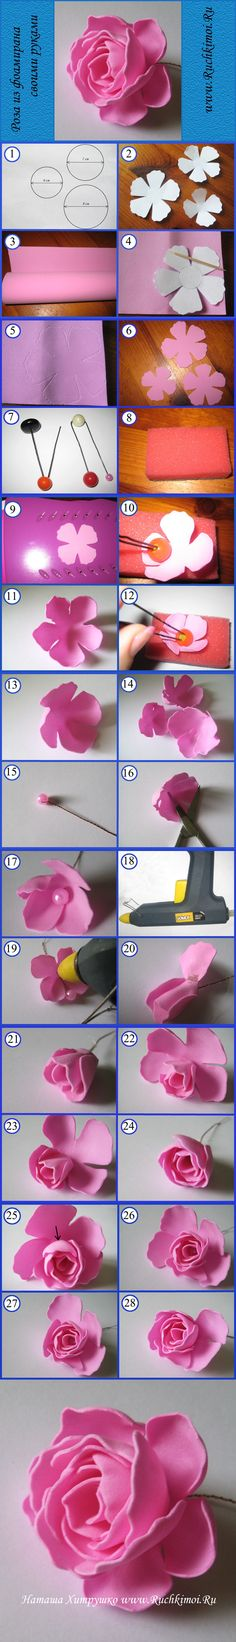 36 ideas flowers diy foam for 2019 Fondant Flowers, Paper Flowers Diy, Handmade Flowers, Felt Flowers, Flower Crafts, Fabric Flowers, Flower Diy, Foam Crafts, Diy And Crafts